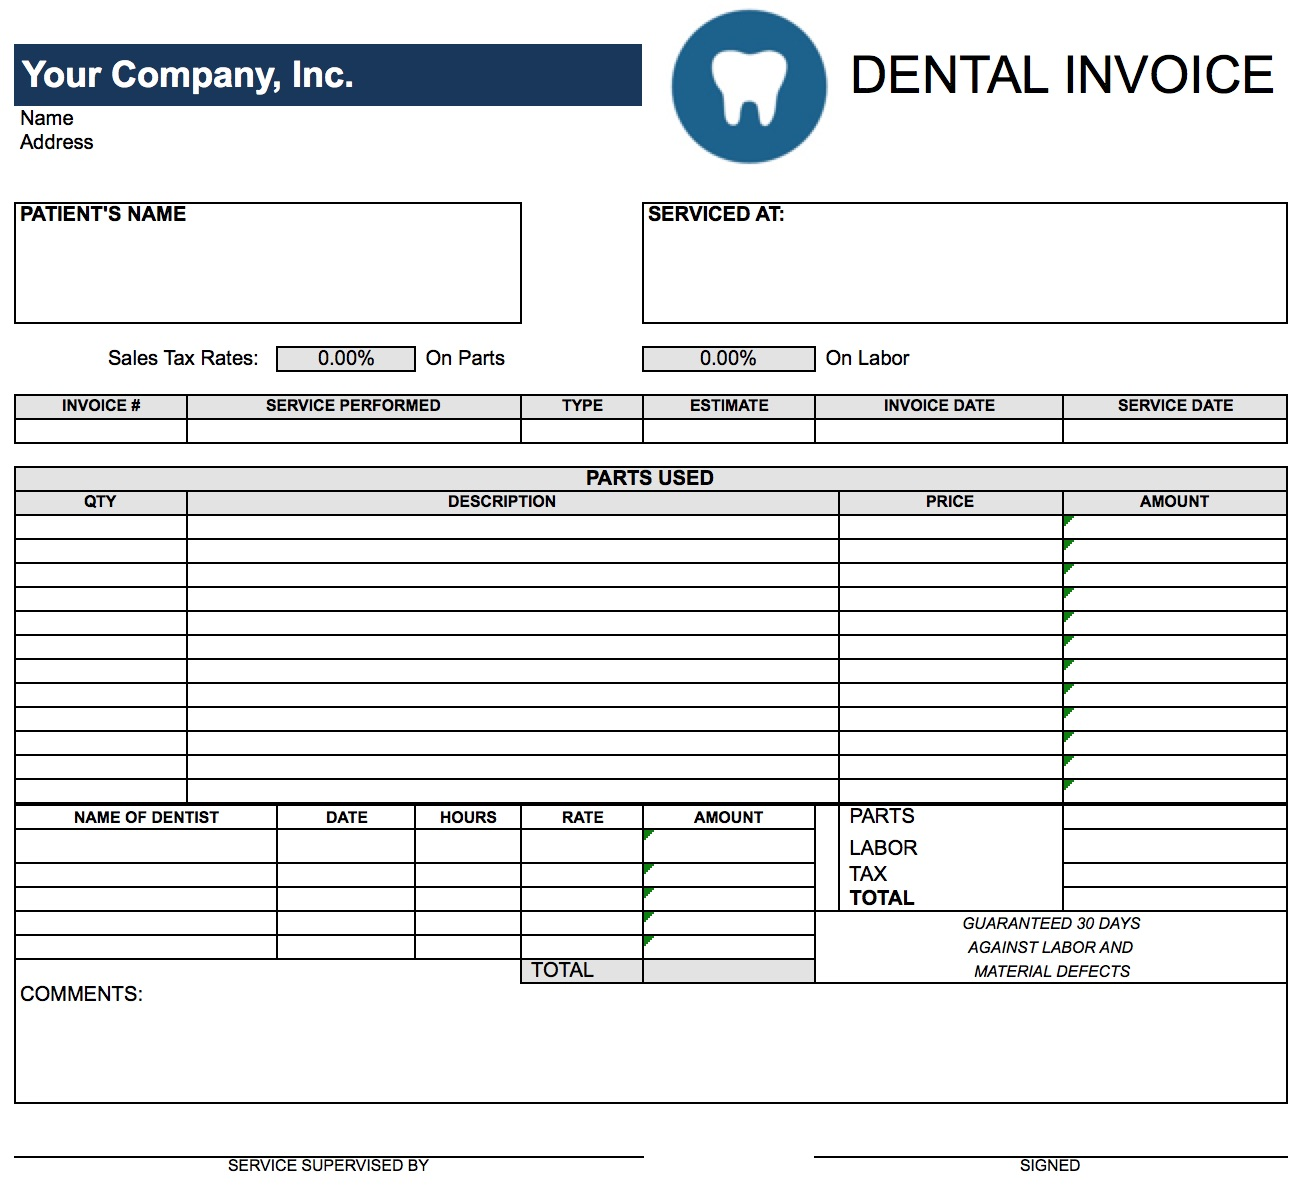 blank invoice templates in pdf word excel dental dentist